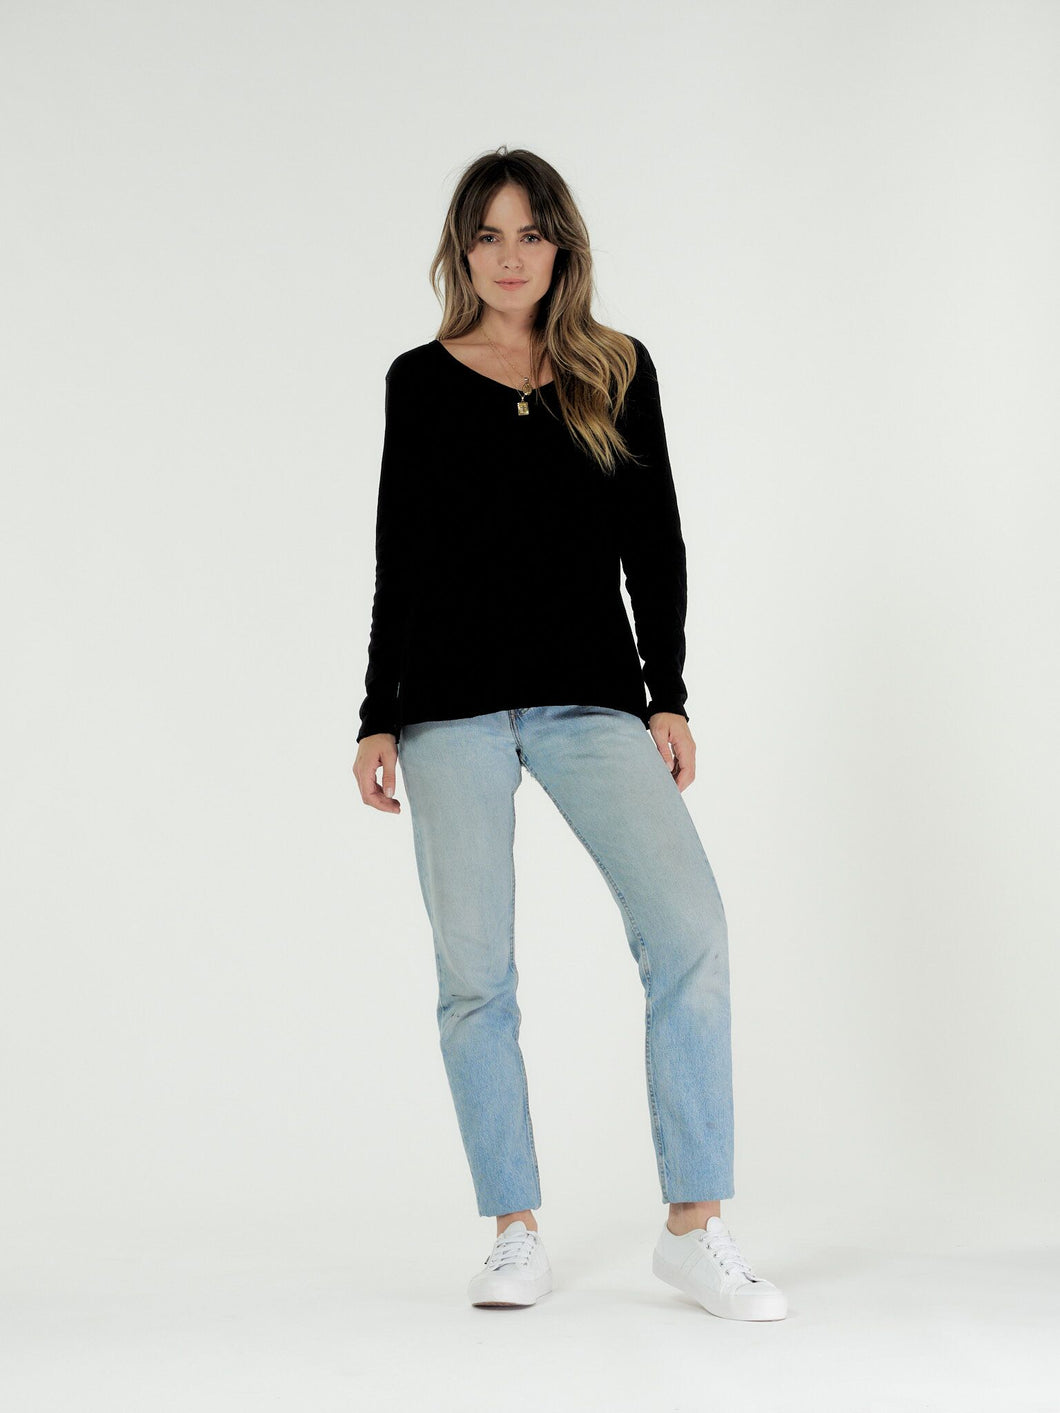 Cle' Organic Cotton Abigail Long Sleeve Tee - Black